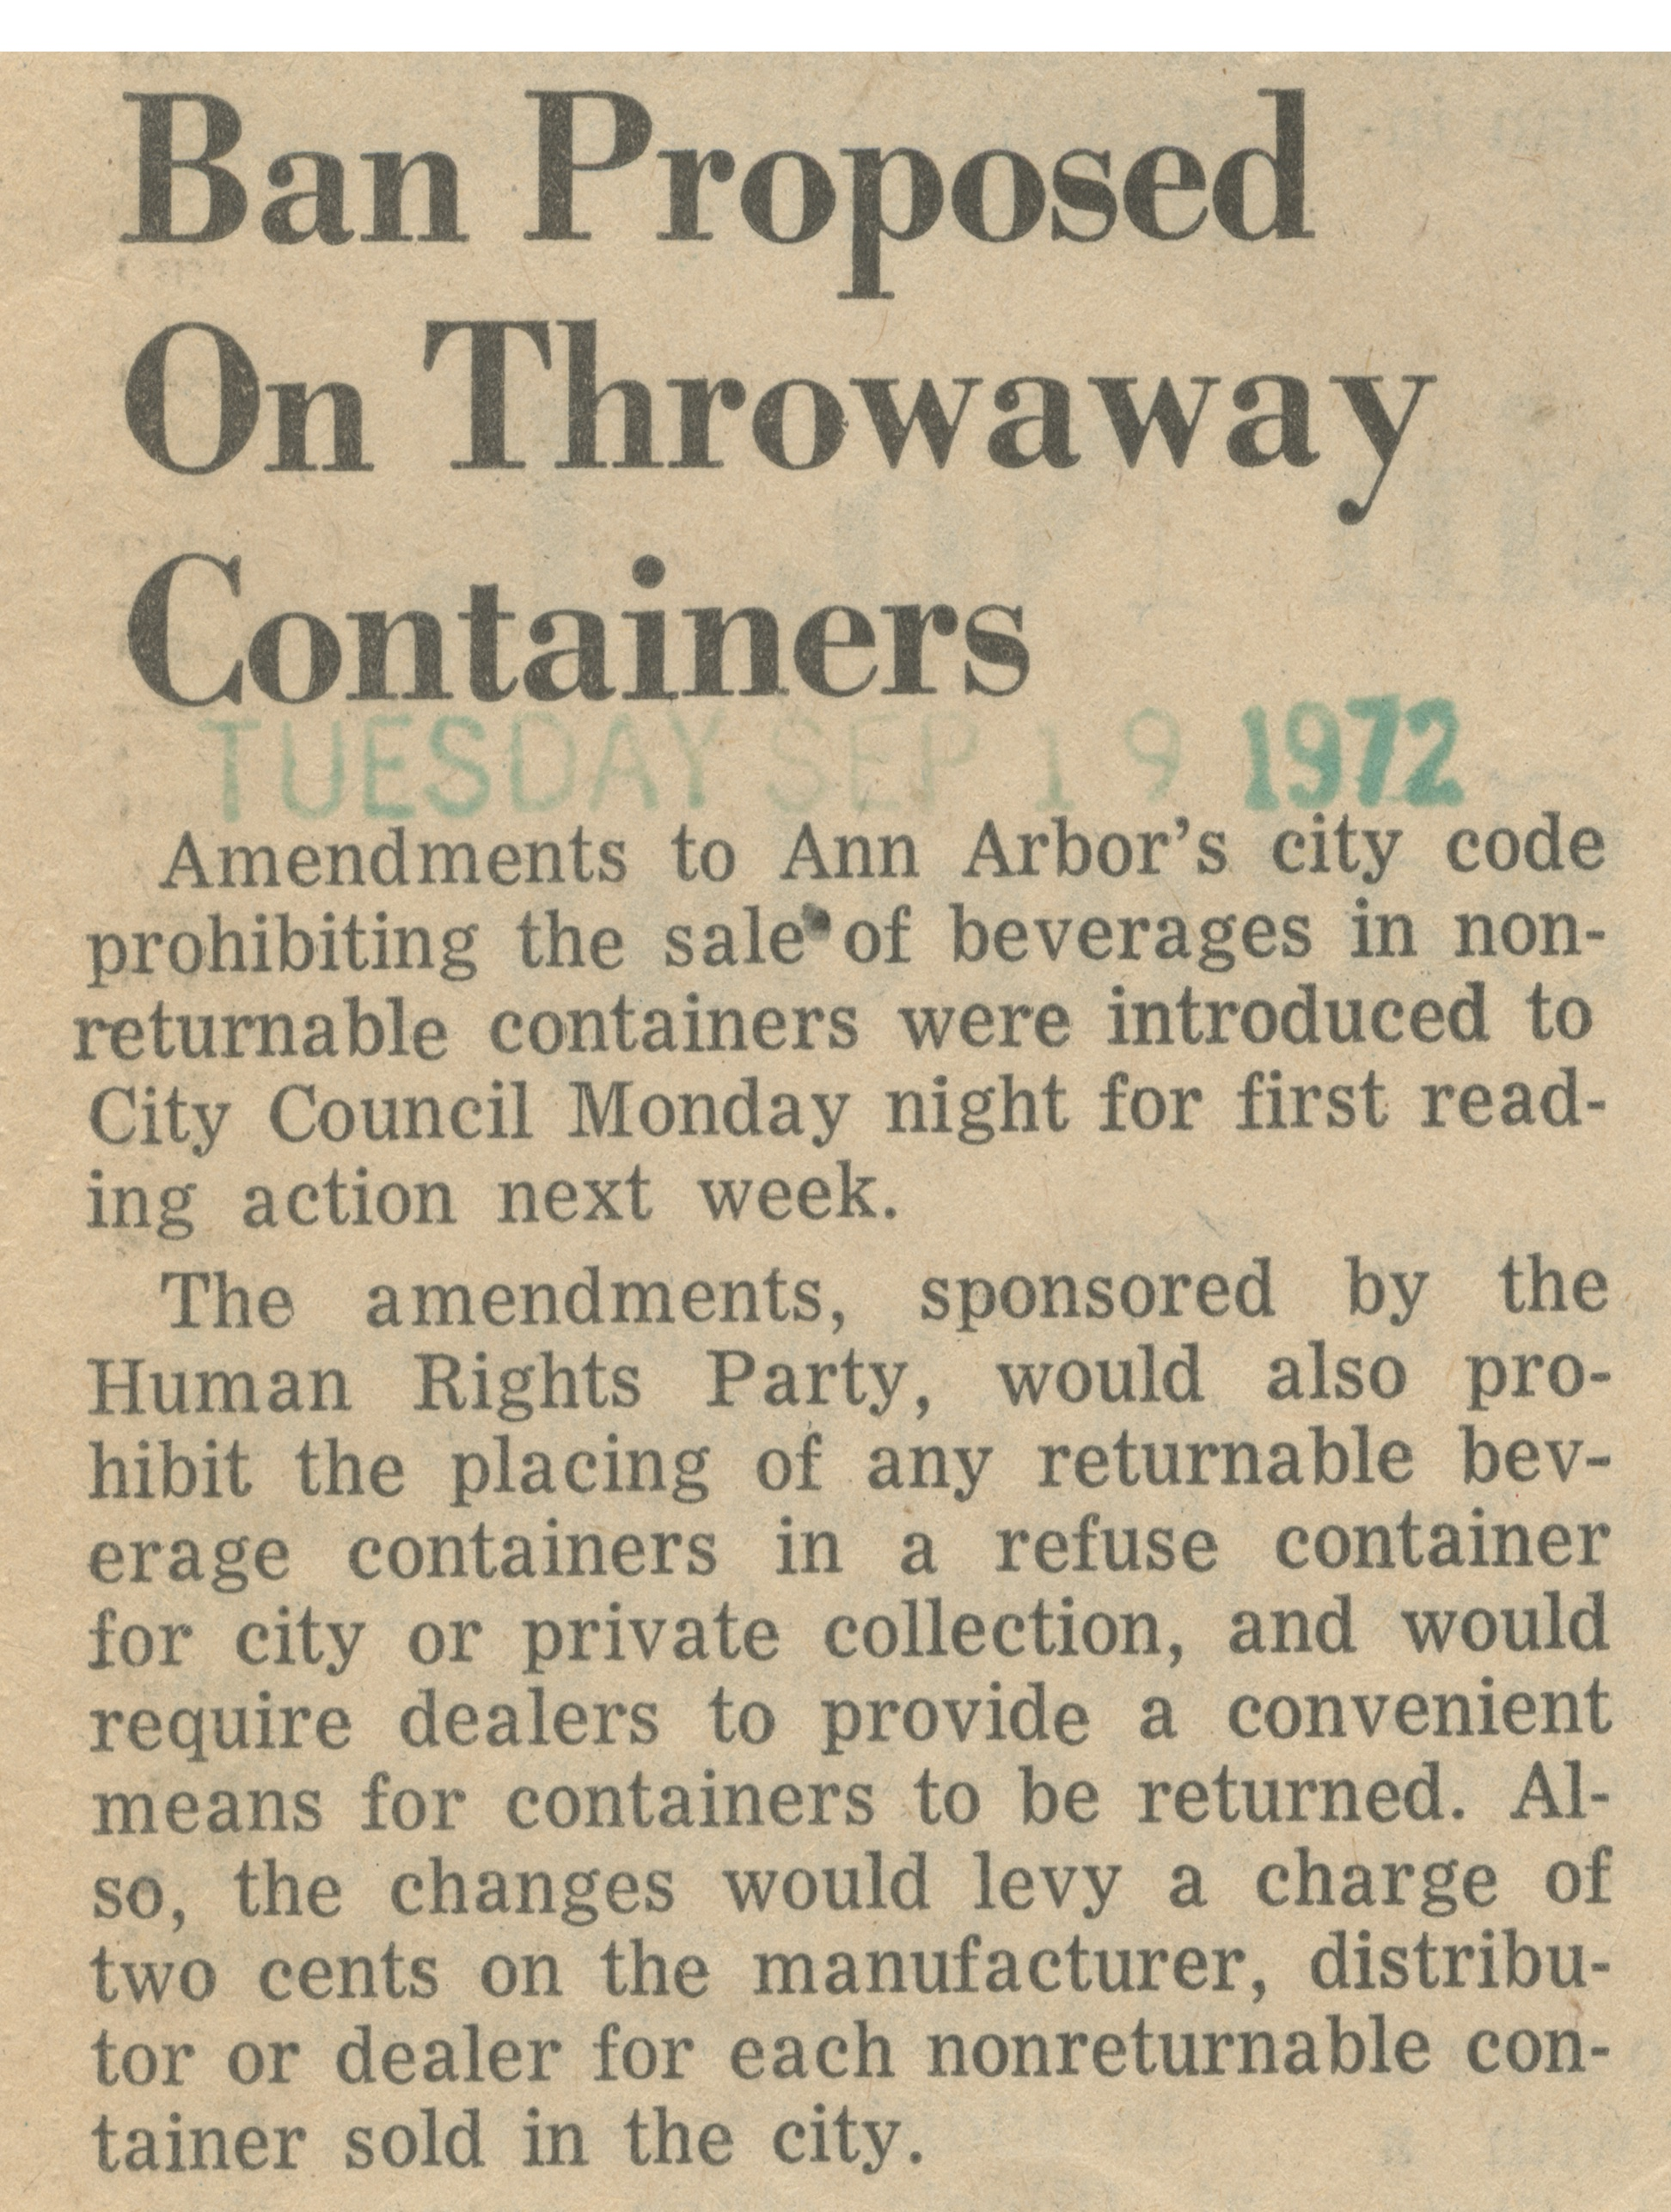 Ban Proposed On Throwaway Containers image